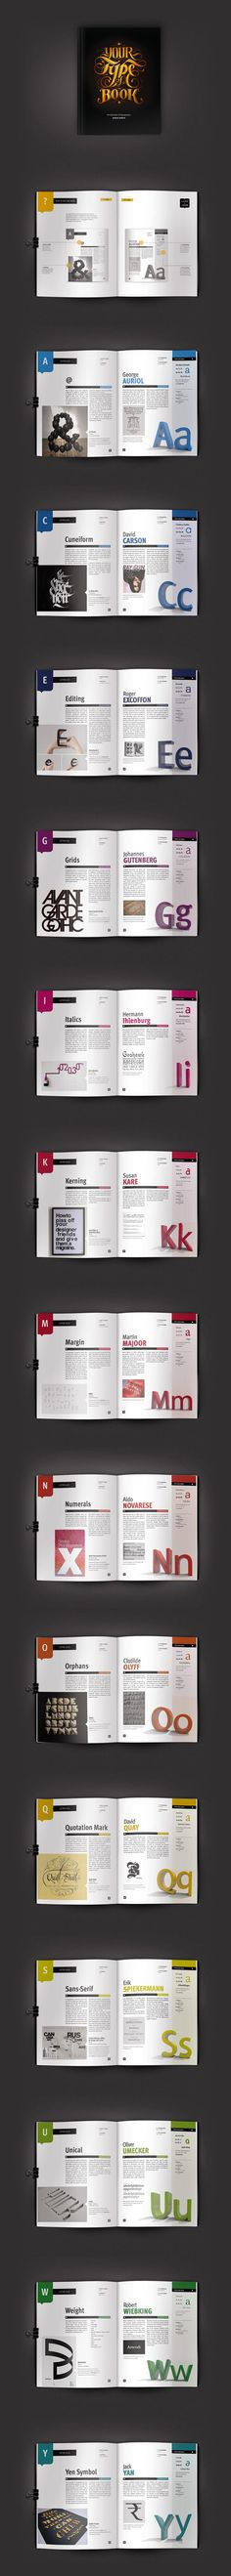 type book #layout